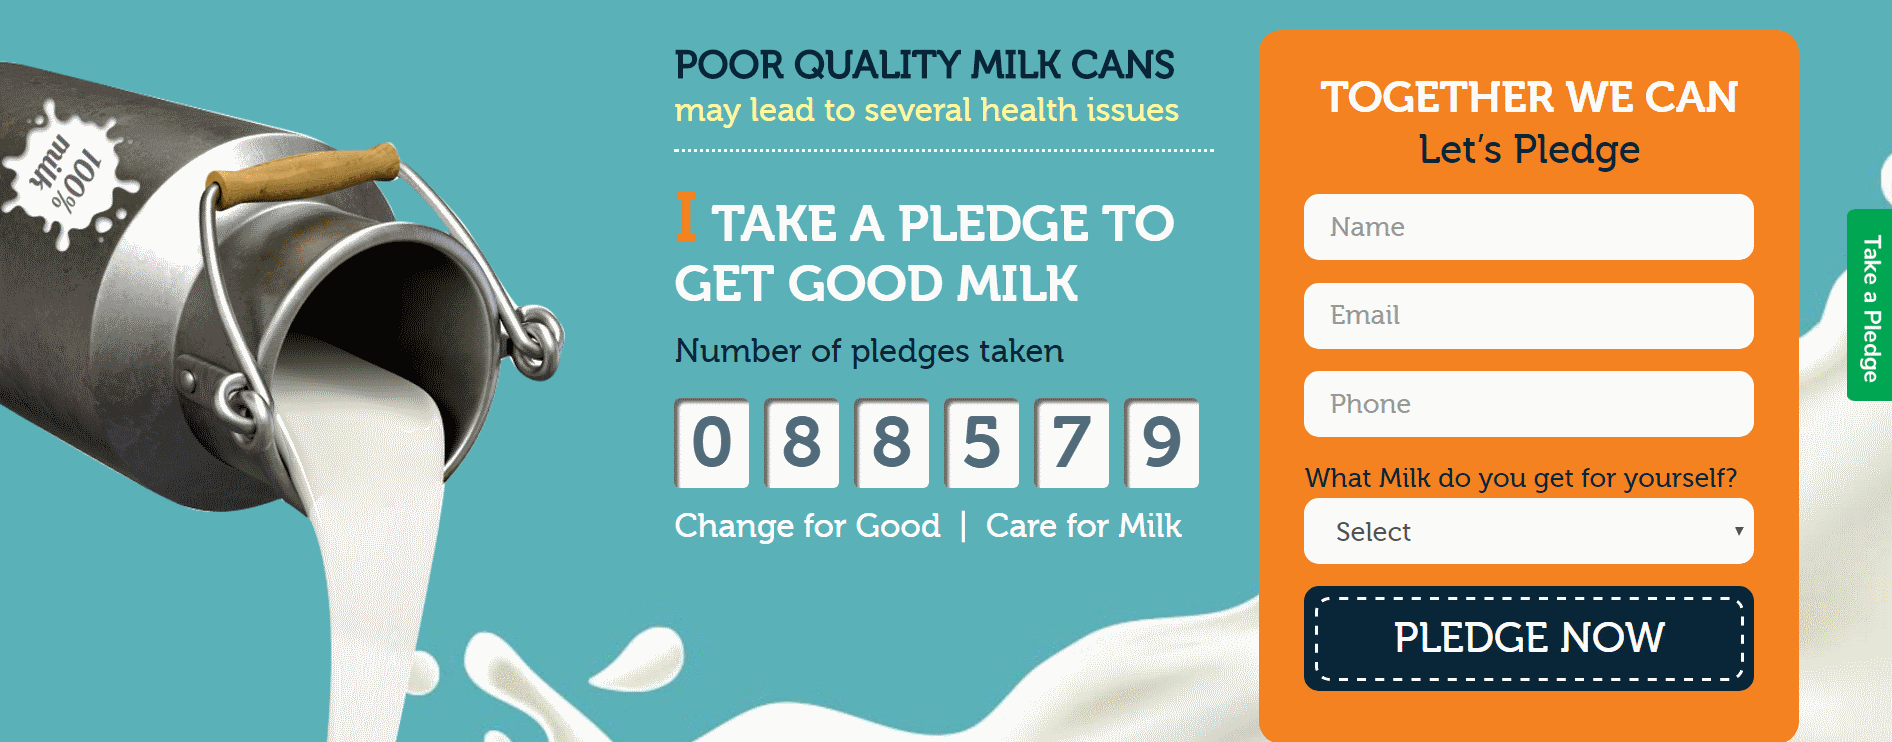 care-for-milk-campaign-jindal-stainless